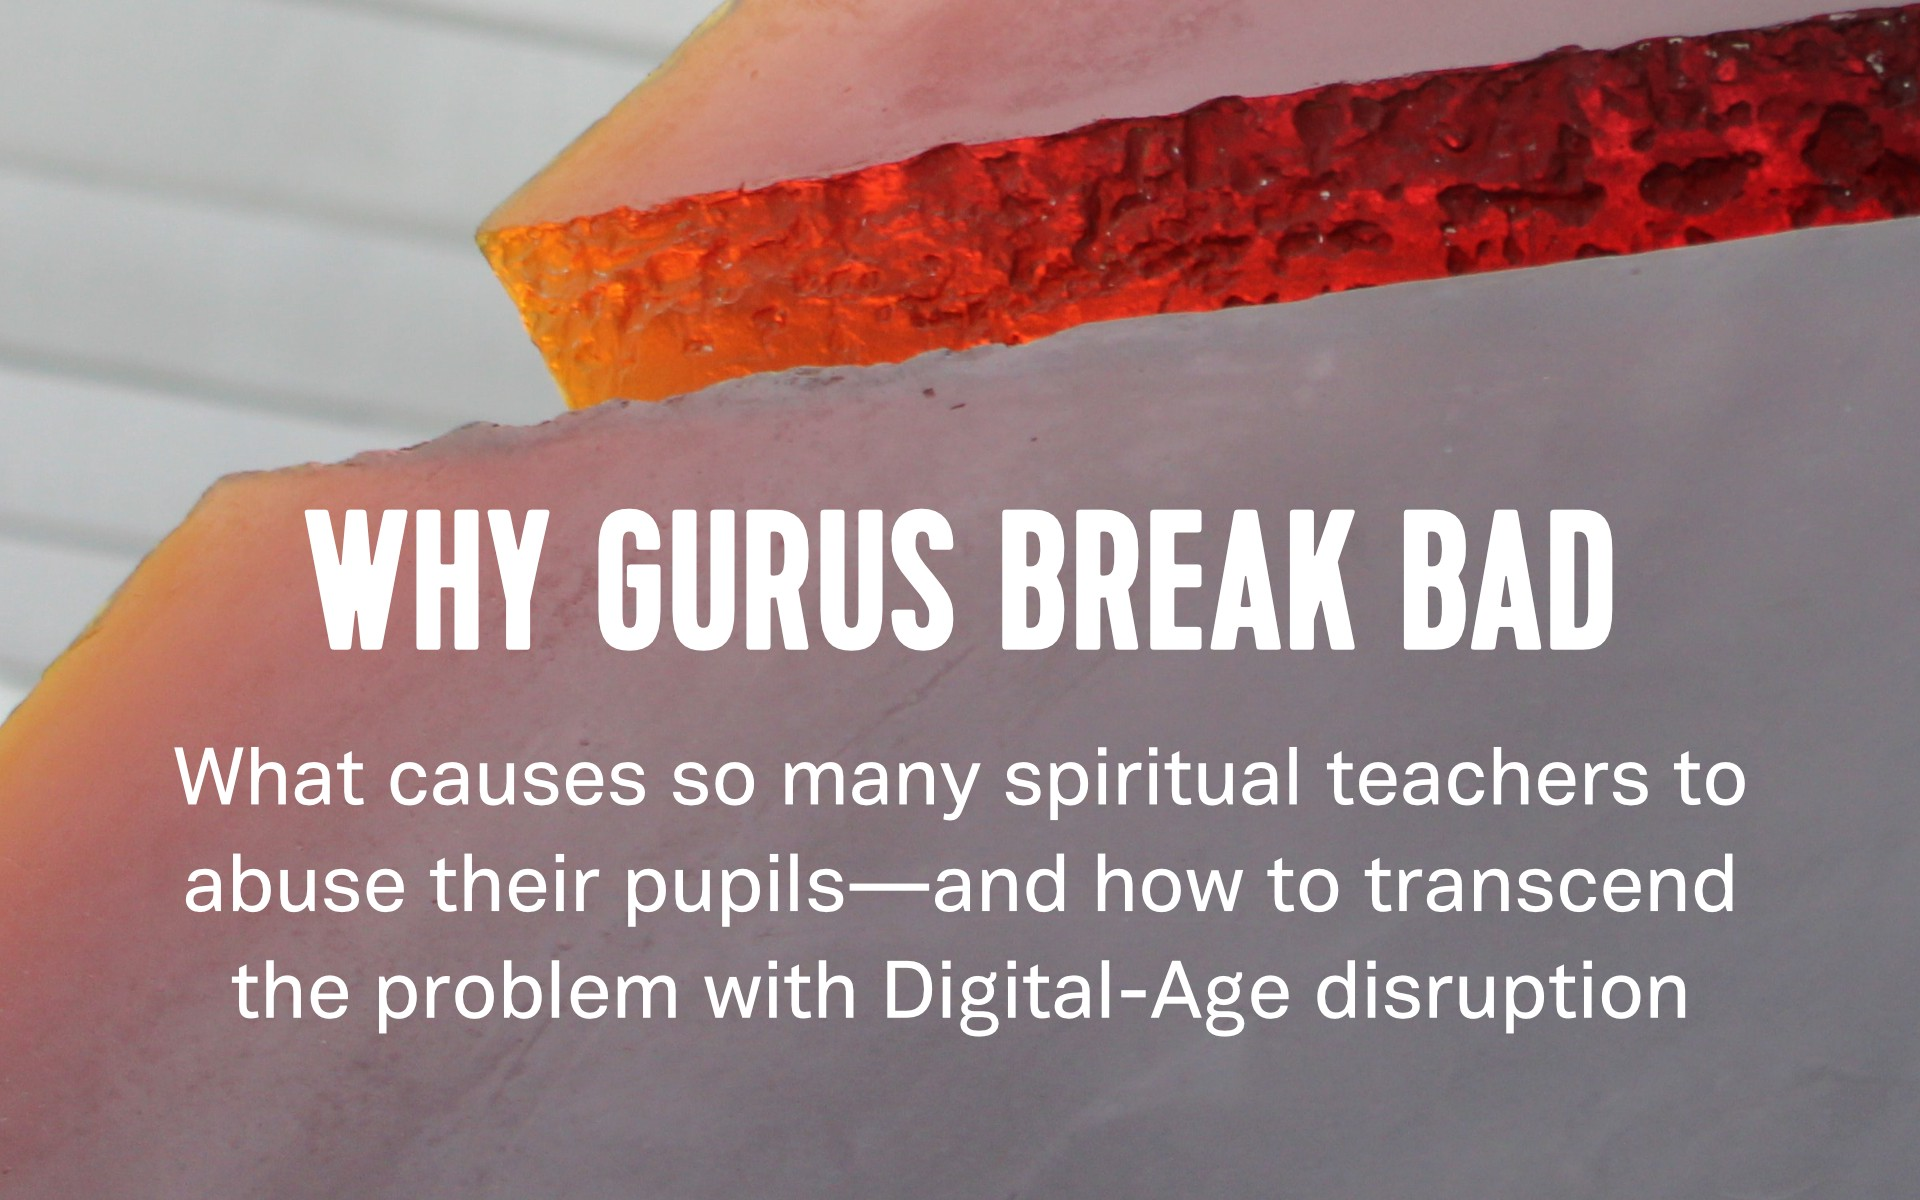 Why Gurus Break Bad - By Nick Seneca Jankel